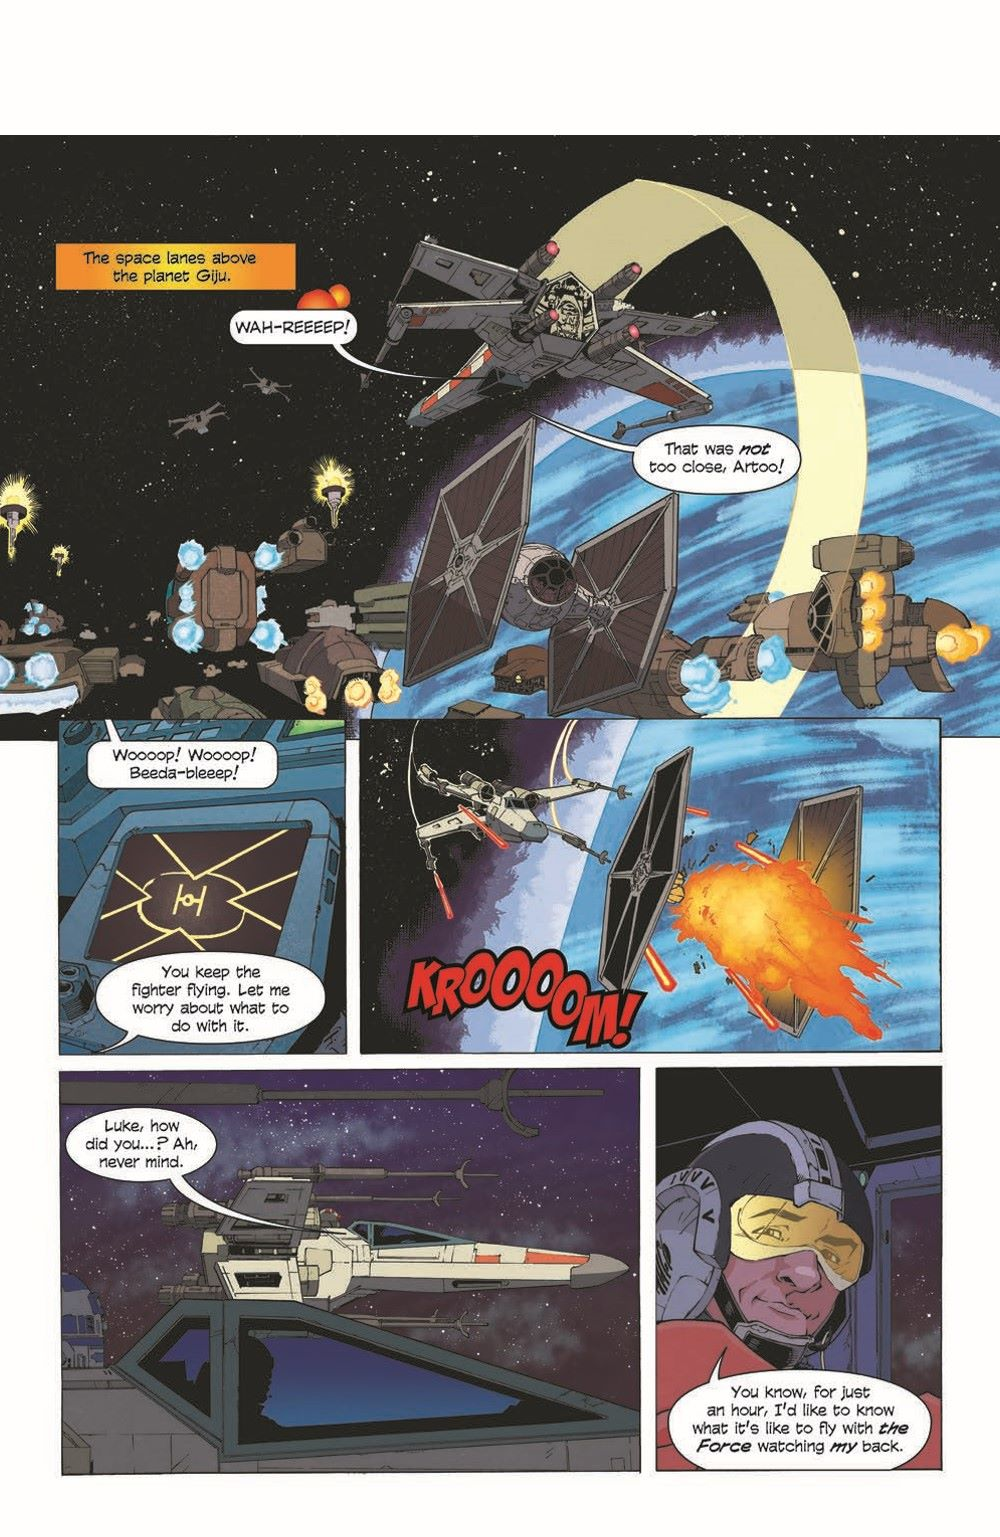 SWA_Weapons01_pr-4 ComicList Previews: STAR WARS ADVENTURES THE WEAPON OF A JEDI #1 (OF 2)